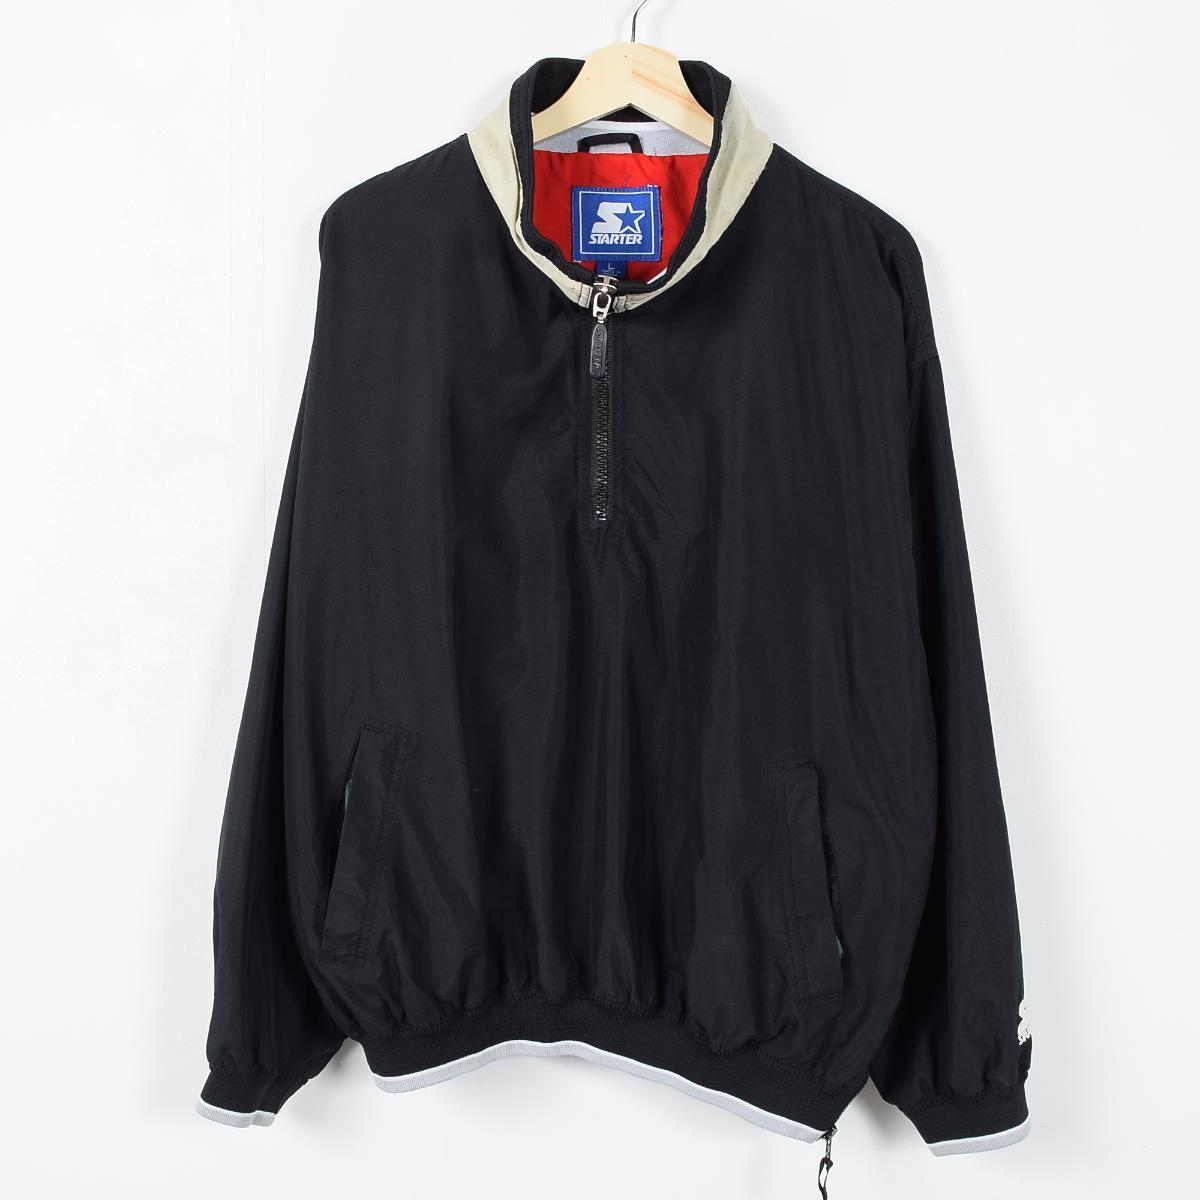 VINTAGE CLOTHING JAM | Rakuten Global Market: Starter half zip ...